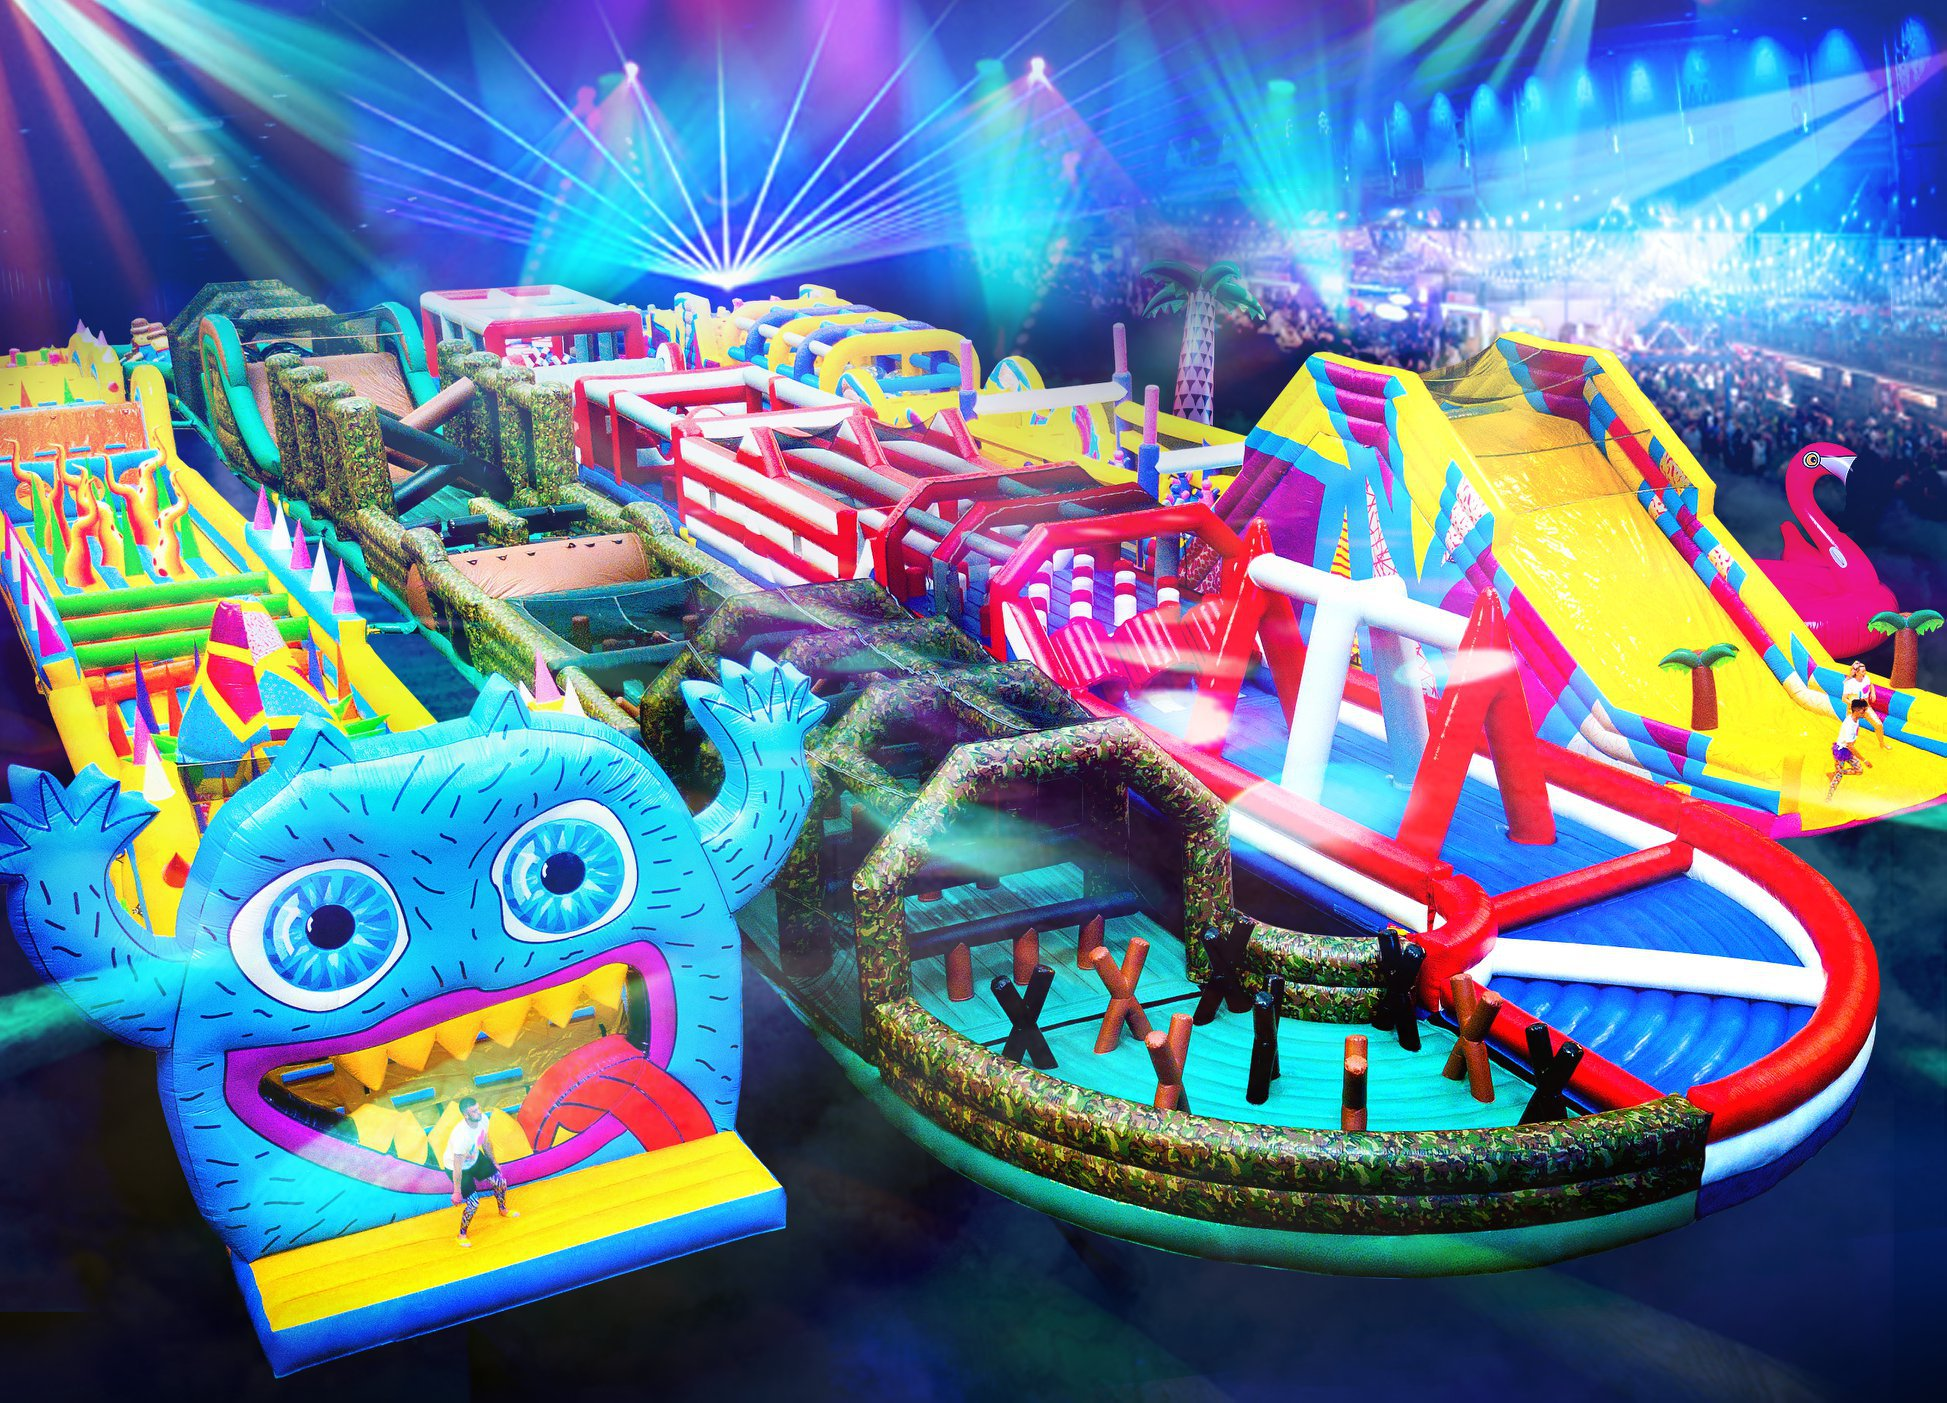 World's biggest inflatable obstacle course set to return to London